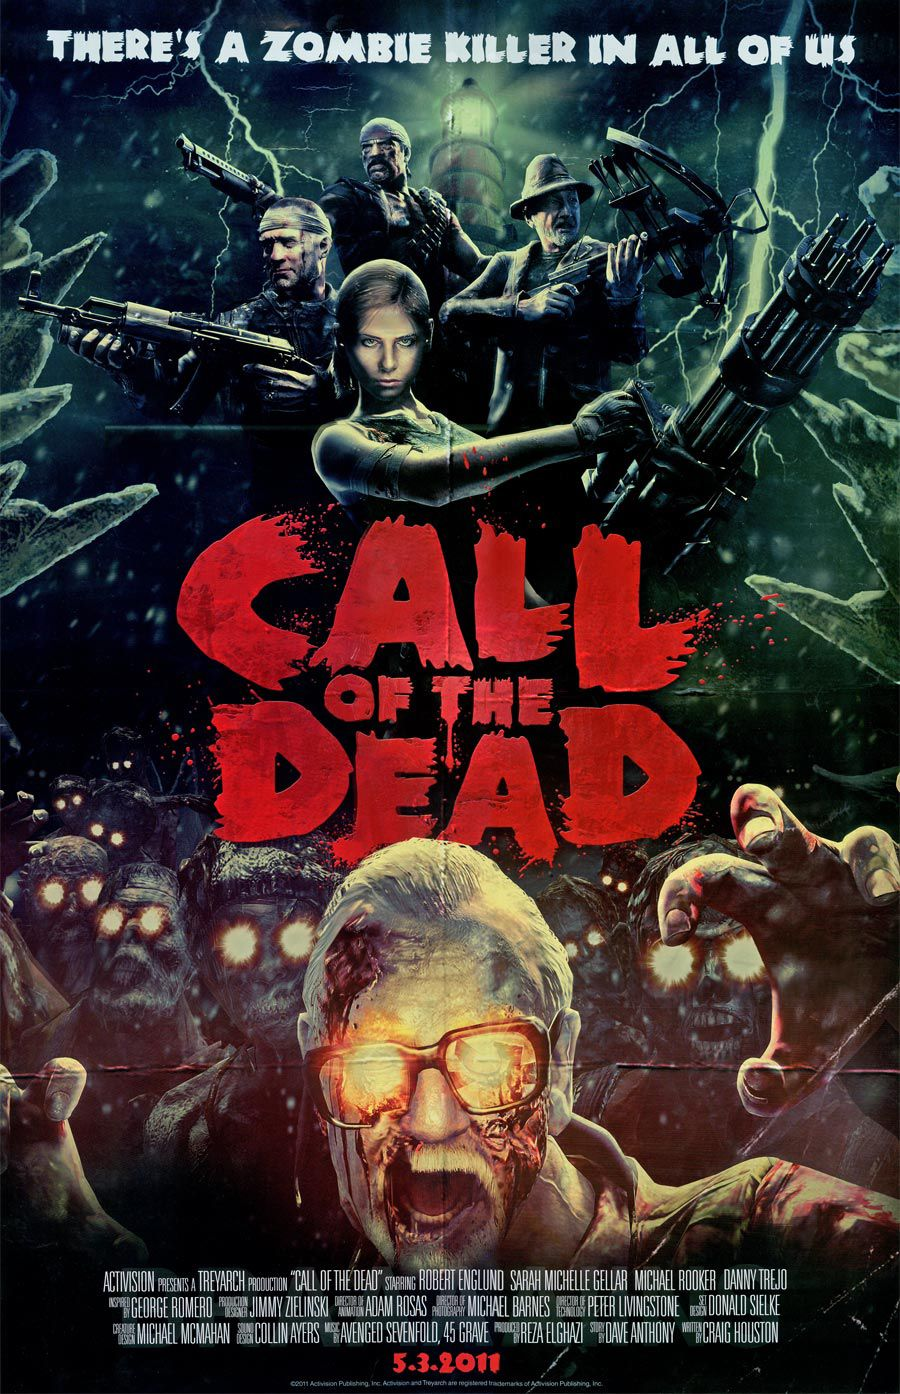 call of duty zombies posters  Google Search  Landons brirthday